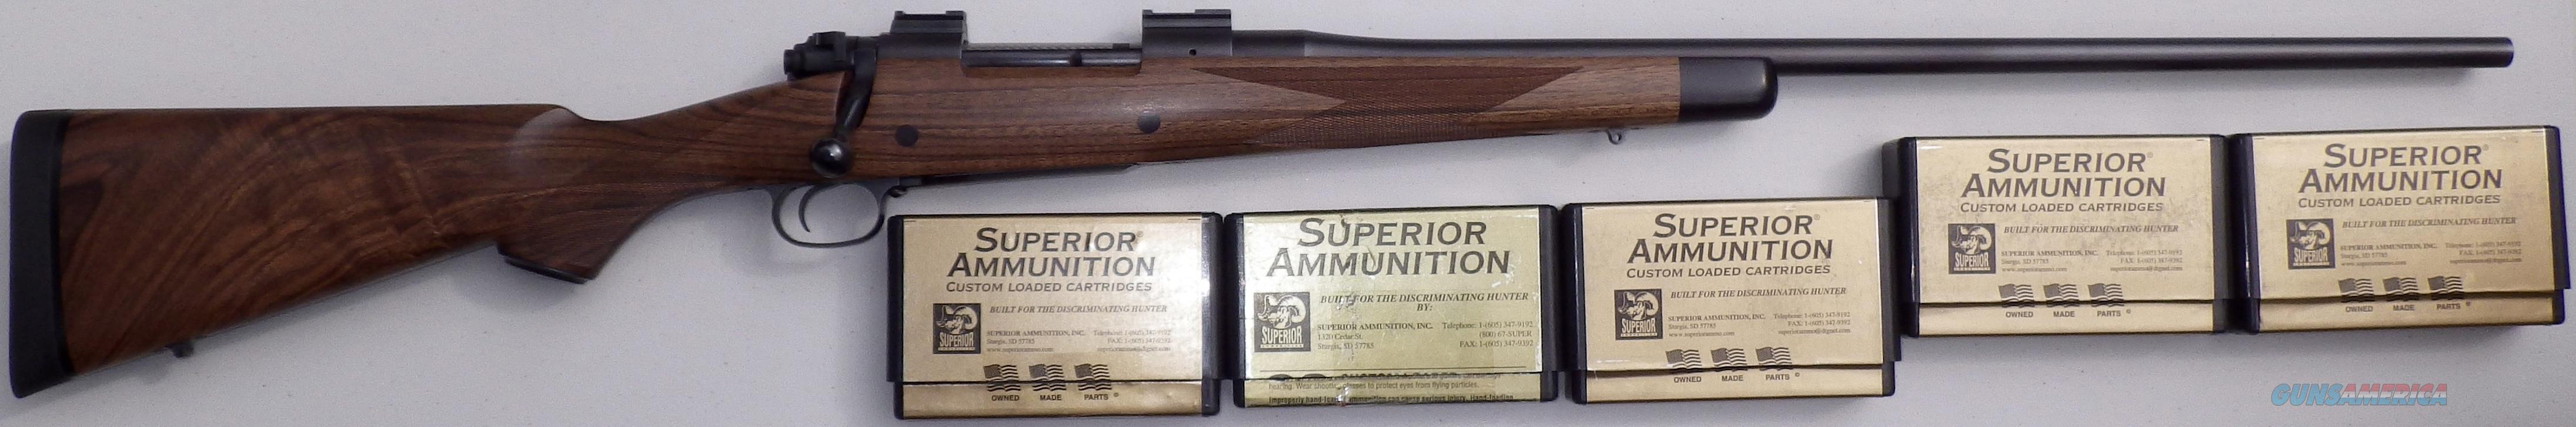 Dakota 76 .300 Dakota, 99%+ condition, jeweled, ebony, Talley, five boxes Superior ammo  Guns > Rifles > Dakota Arms Rifles